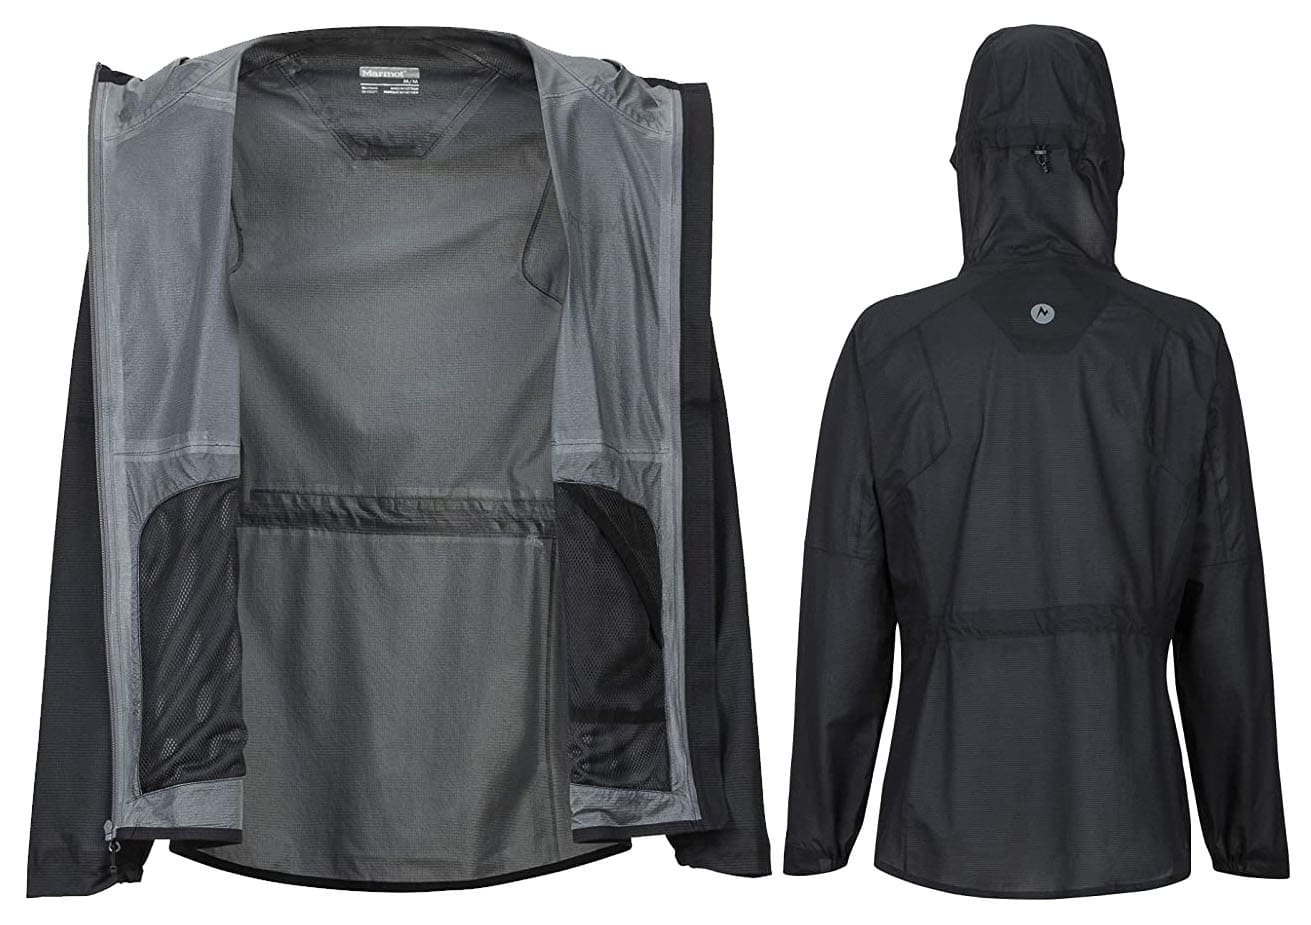 Although lightweight, it's packed with technical features to keep you dry and comfortable